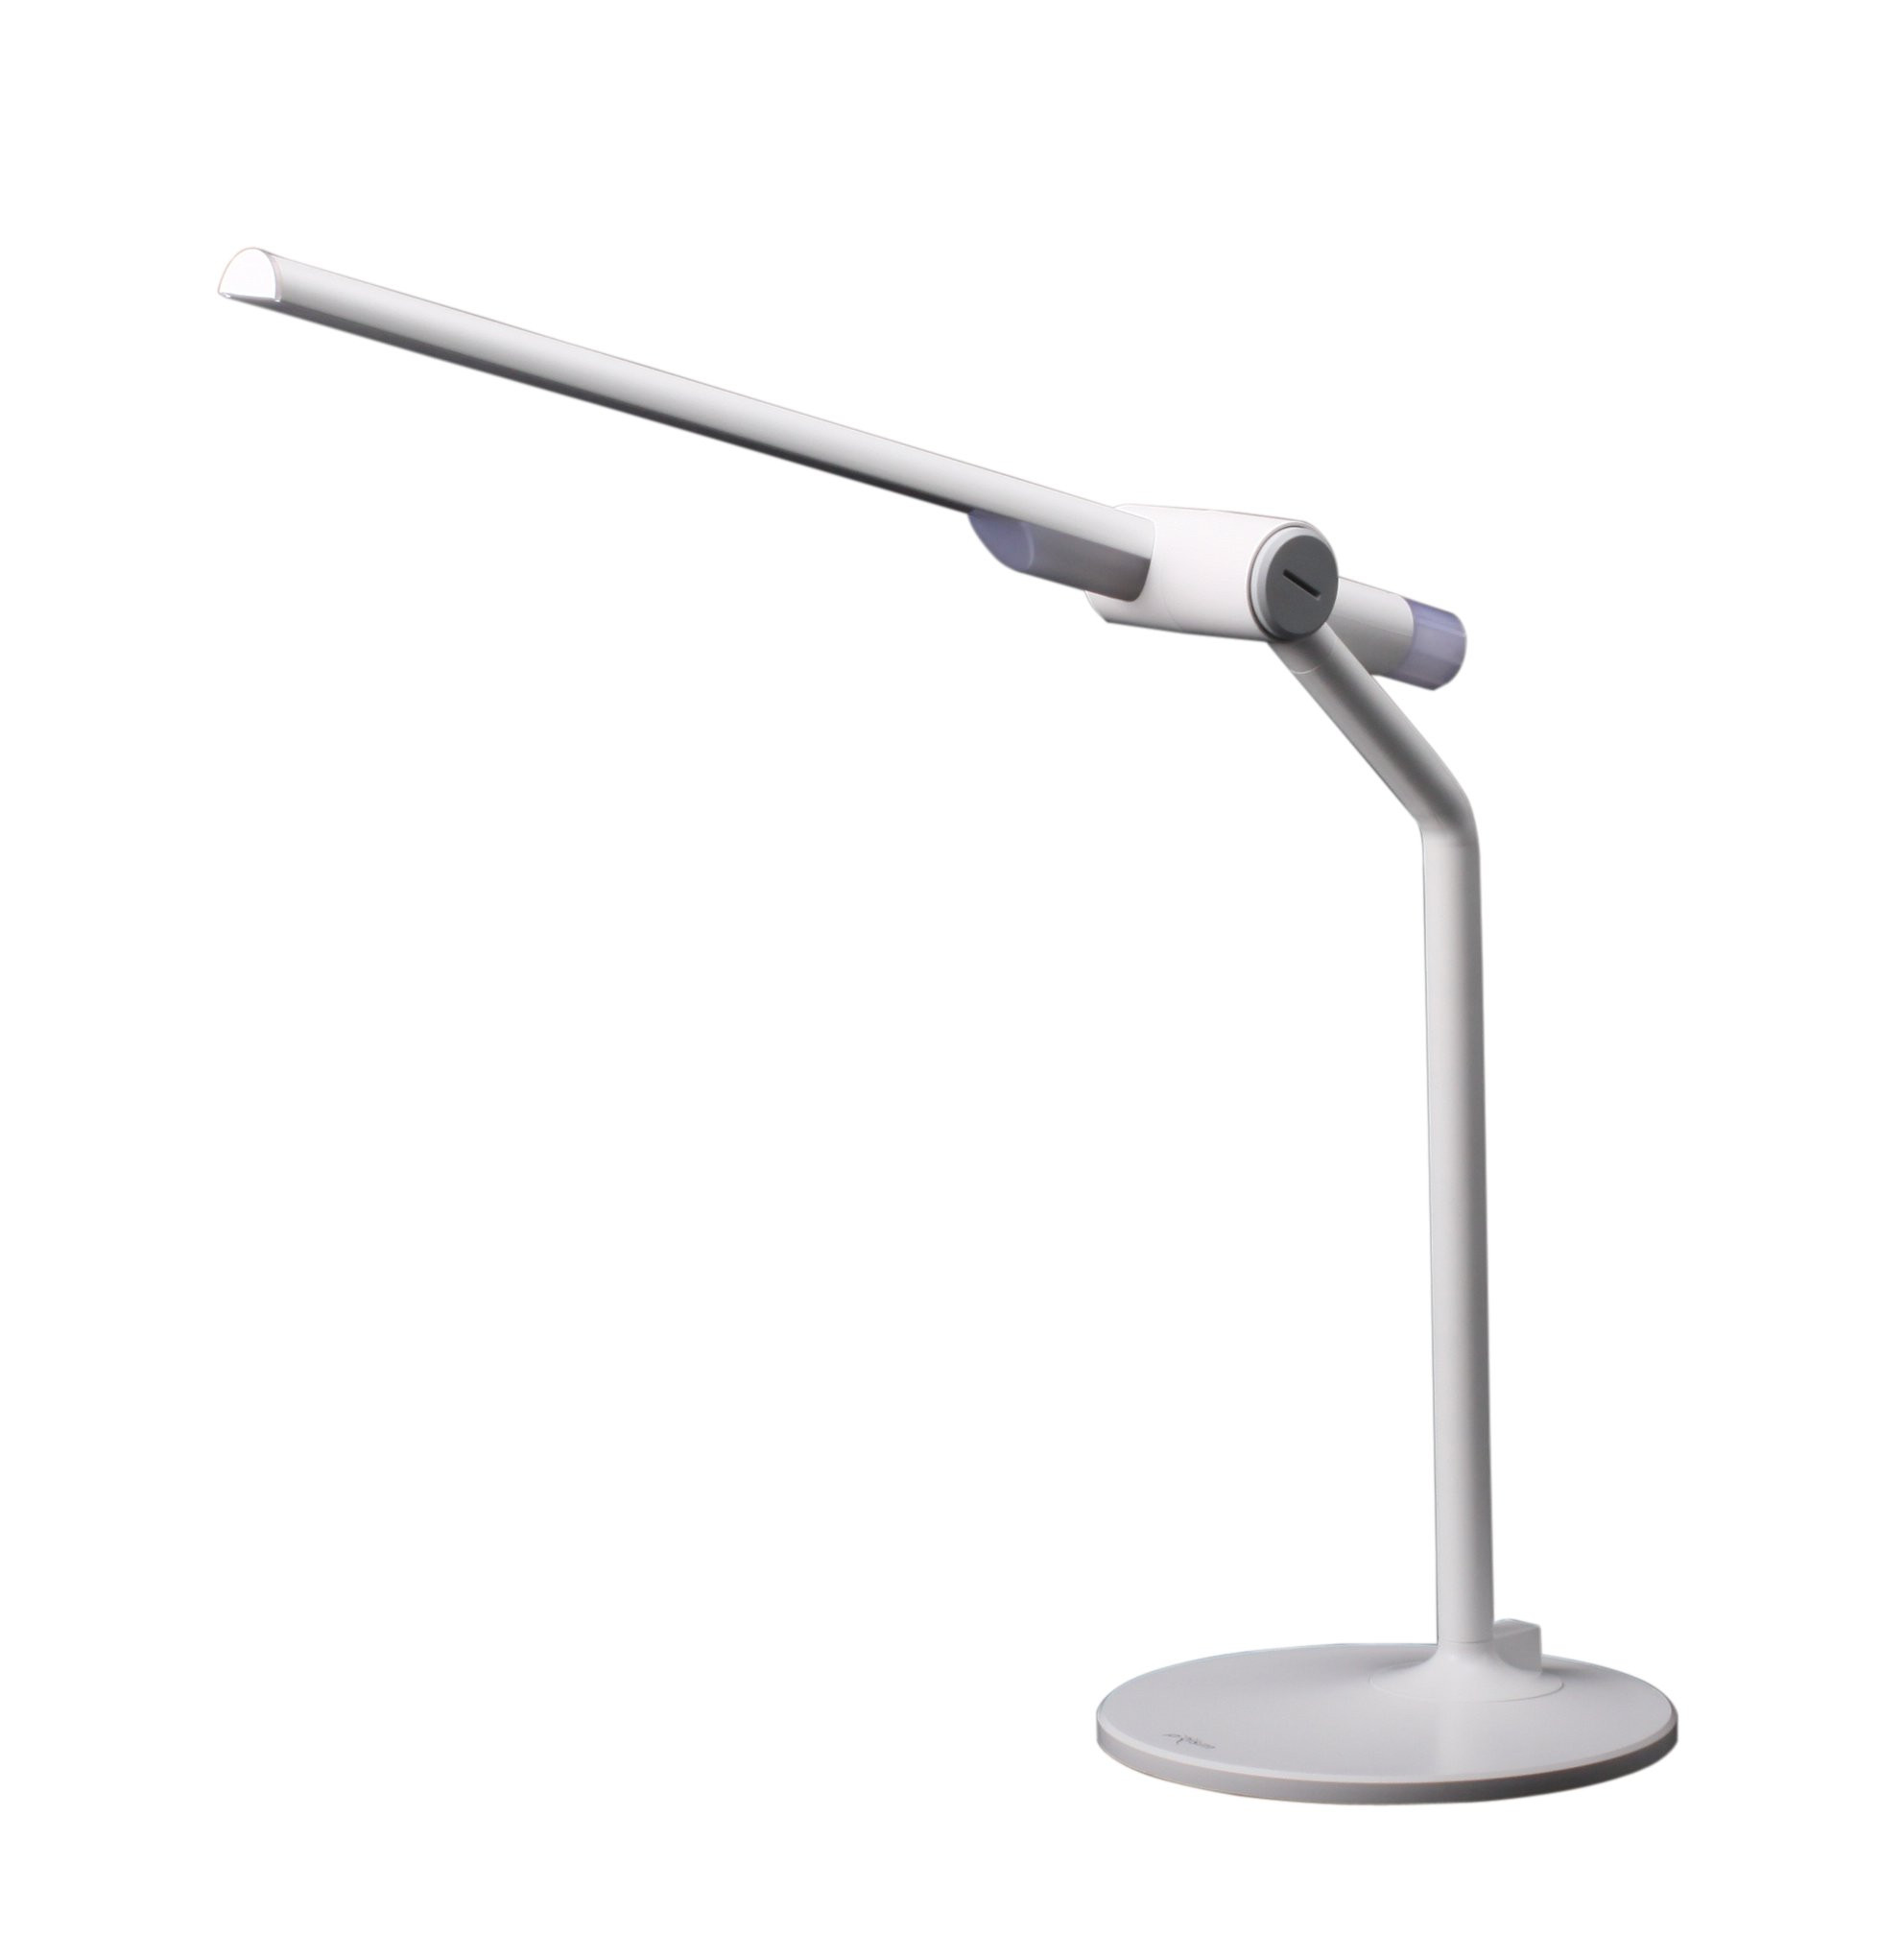 Best ideas about Desk Lamp Amazon . Save or Pin Futuristic Table Lamp Amazon Now.